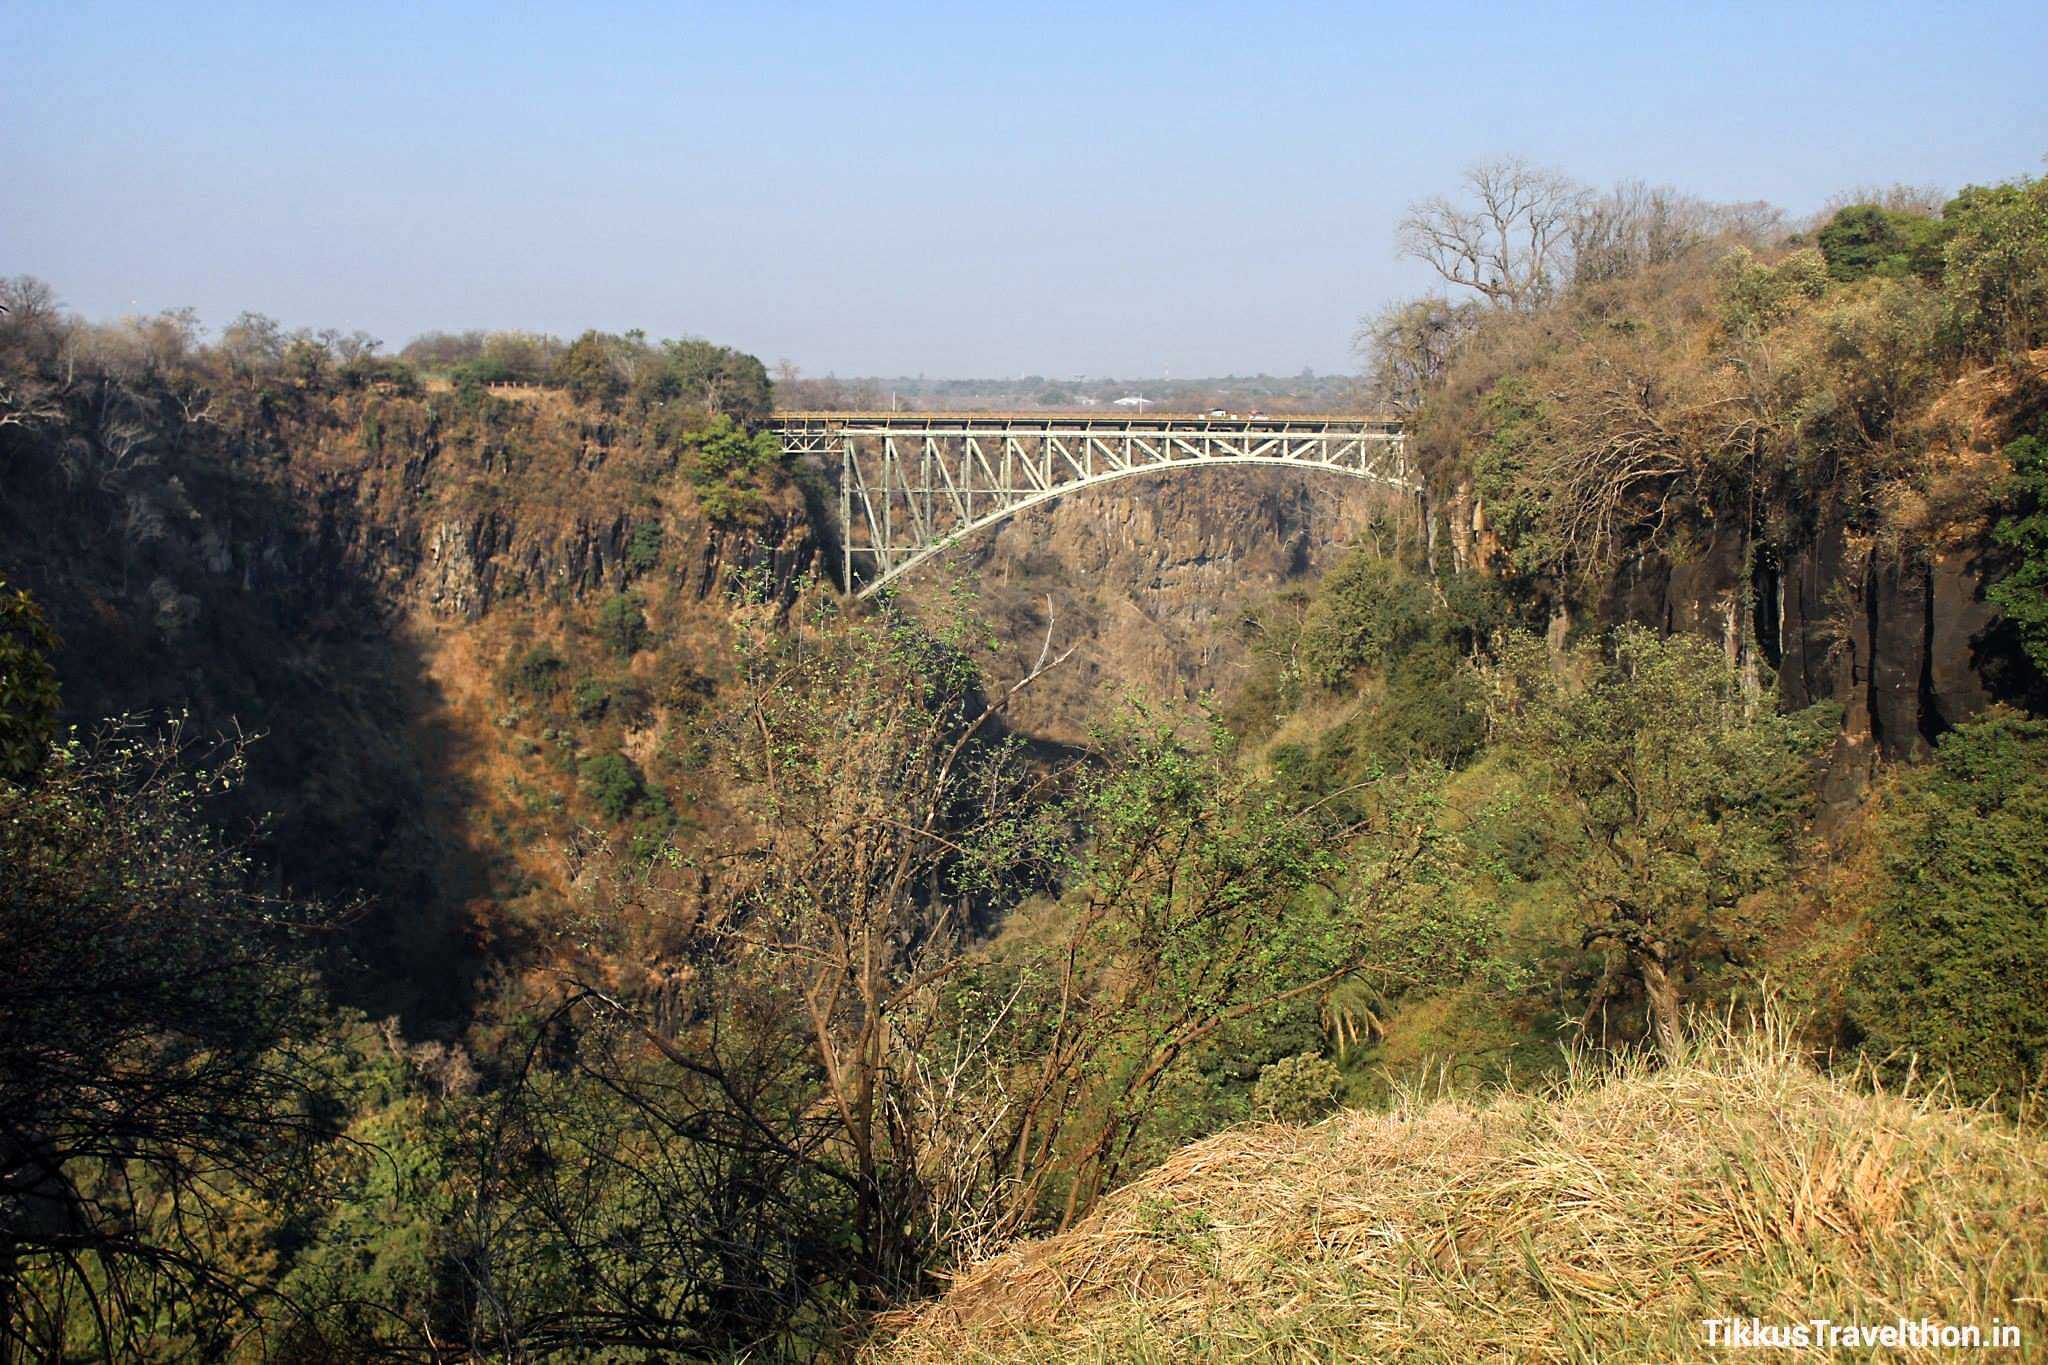 The Bridge Across the Zambezi - built in England by the Cleveland Bridge & Engineering Company, shipped to the Mozambique port of Beira and then transported to the Victoria Falls on rail. It took 14 months to construct and was completed in 1905.